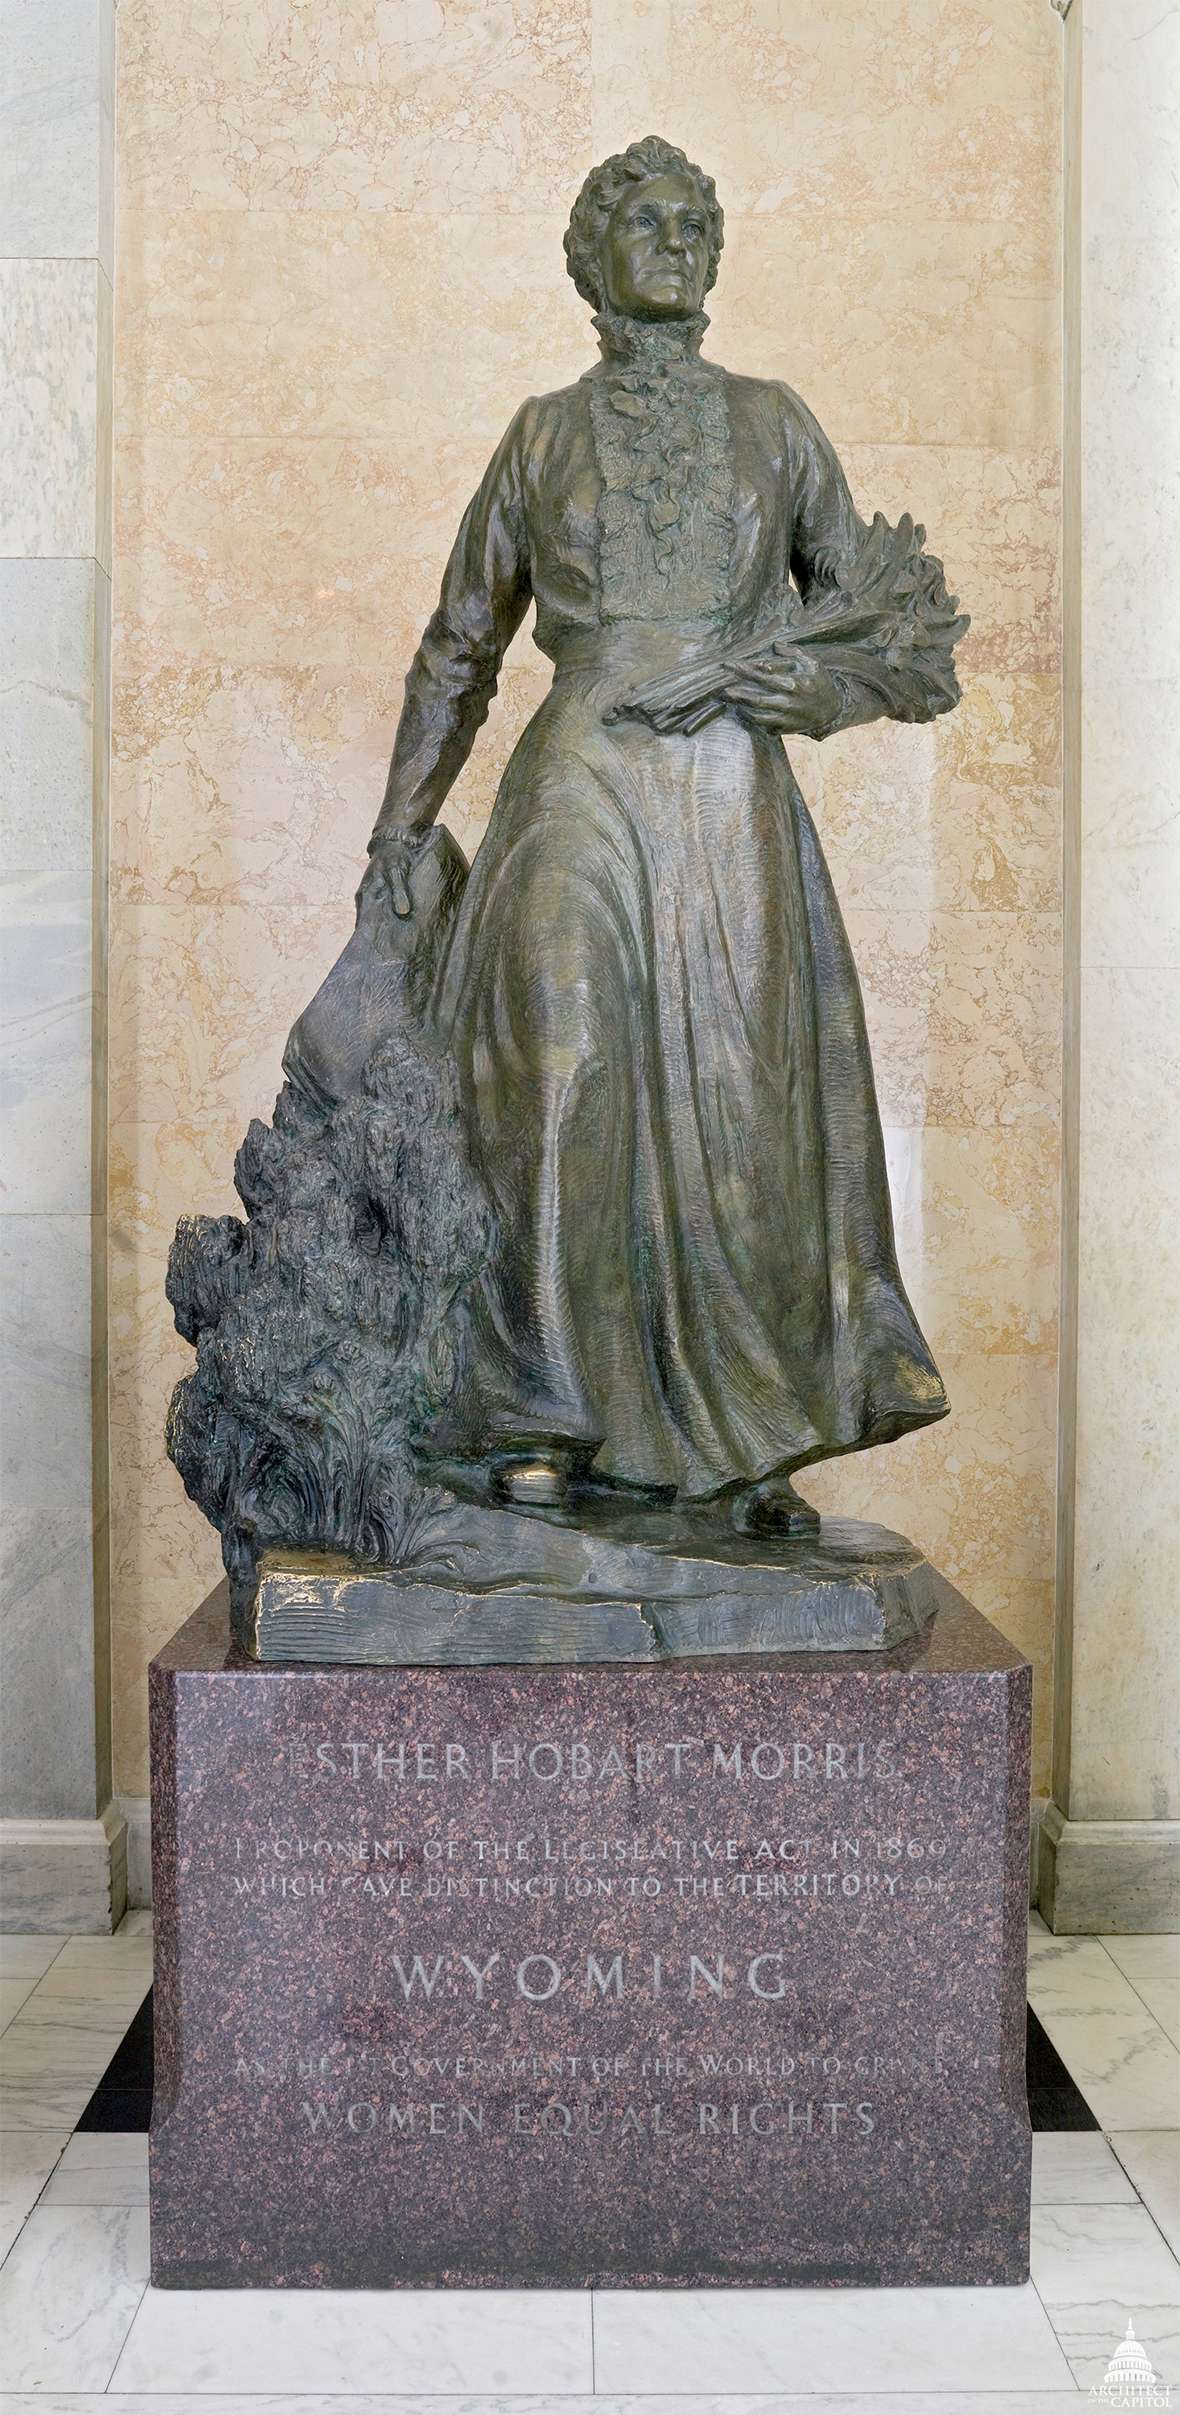 The heroic Avard Fairbanks statue of Esther Morris at the U.S. Capitol was installed in 1960, and remains there. A duplicate stood for decades in front of the Wyoming Capitol. As part of the 2019 remodel of the building the sculpture was moved underground to the Capitol Extension between the Capitol and the Herschler Building. Architect of the Capitol.